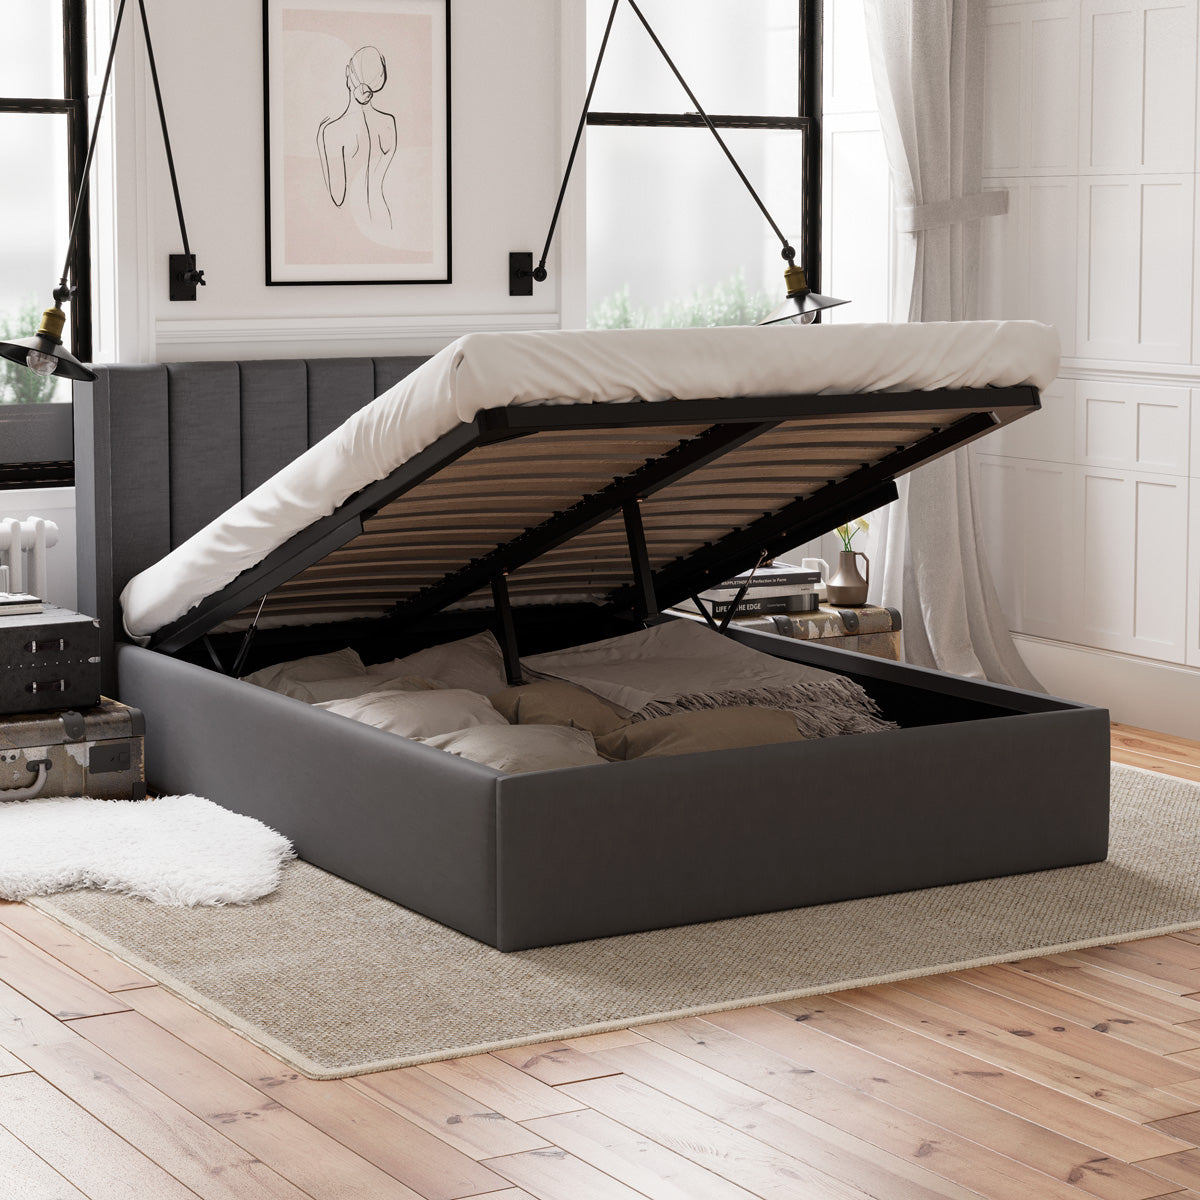 Emilie Gas Lift Storage Wing Bed Frame (Charcoal Fabric)